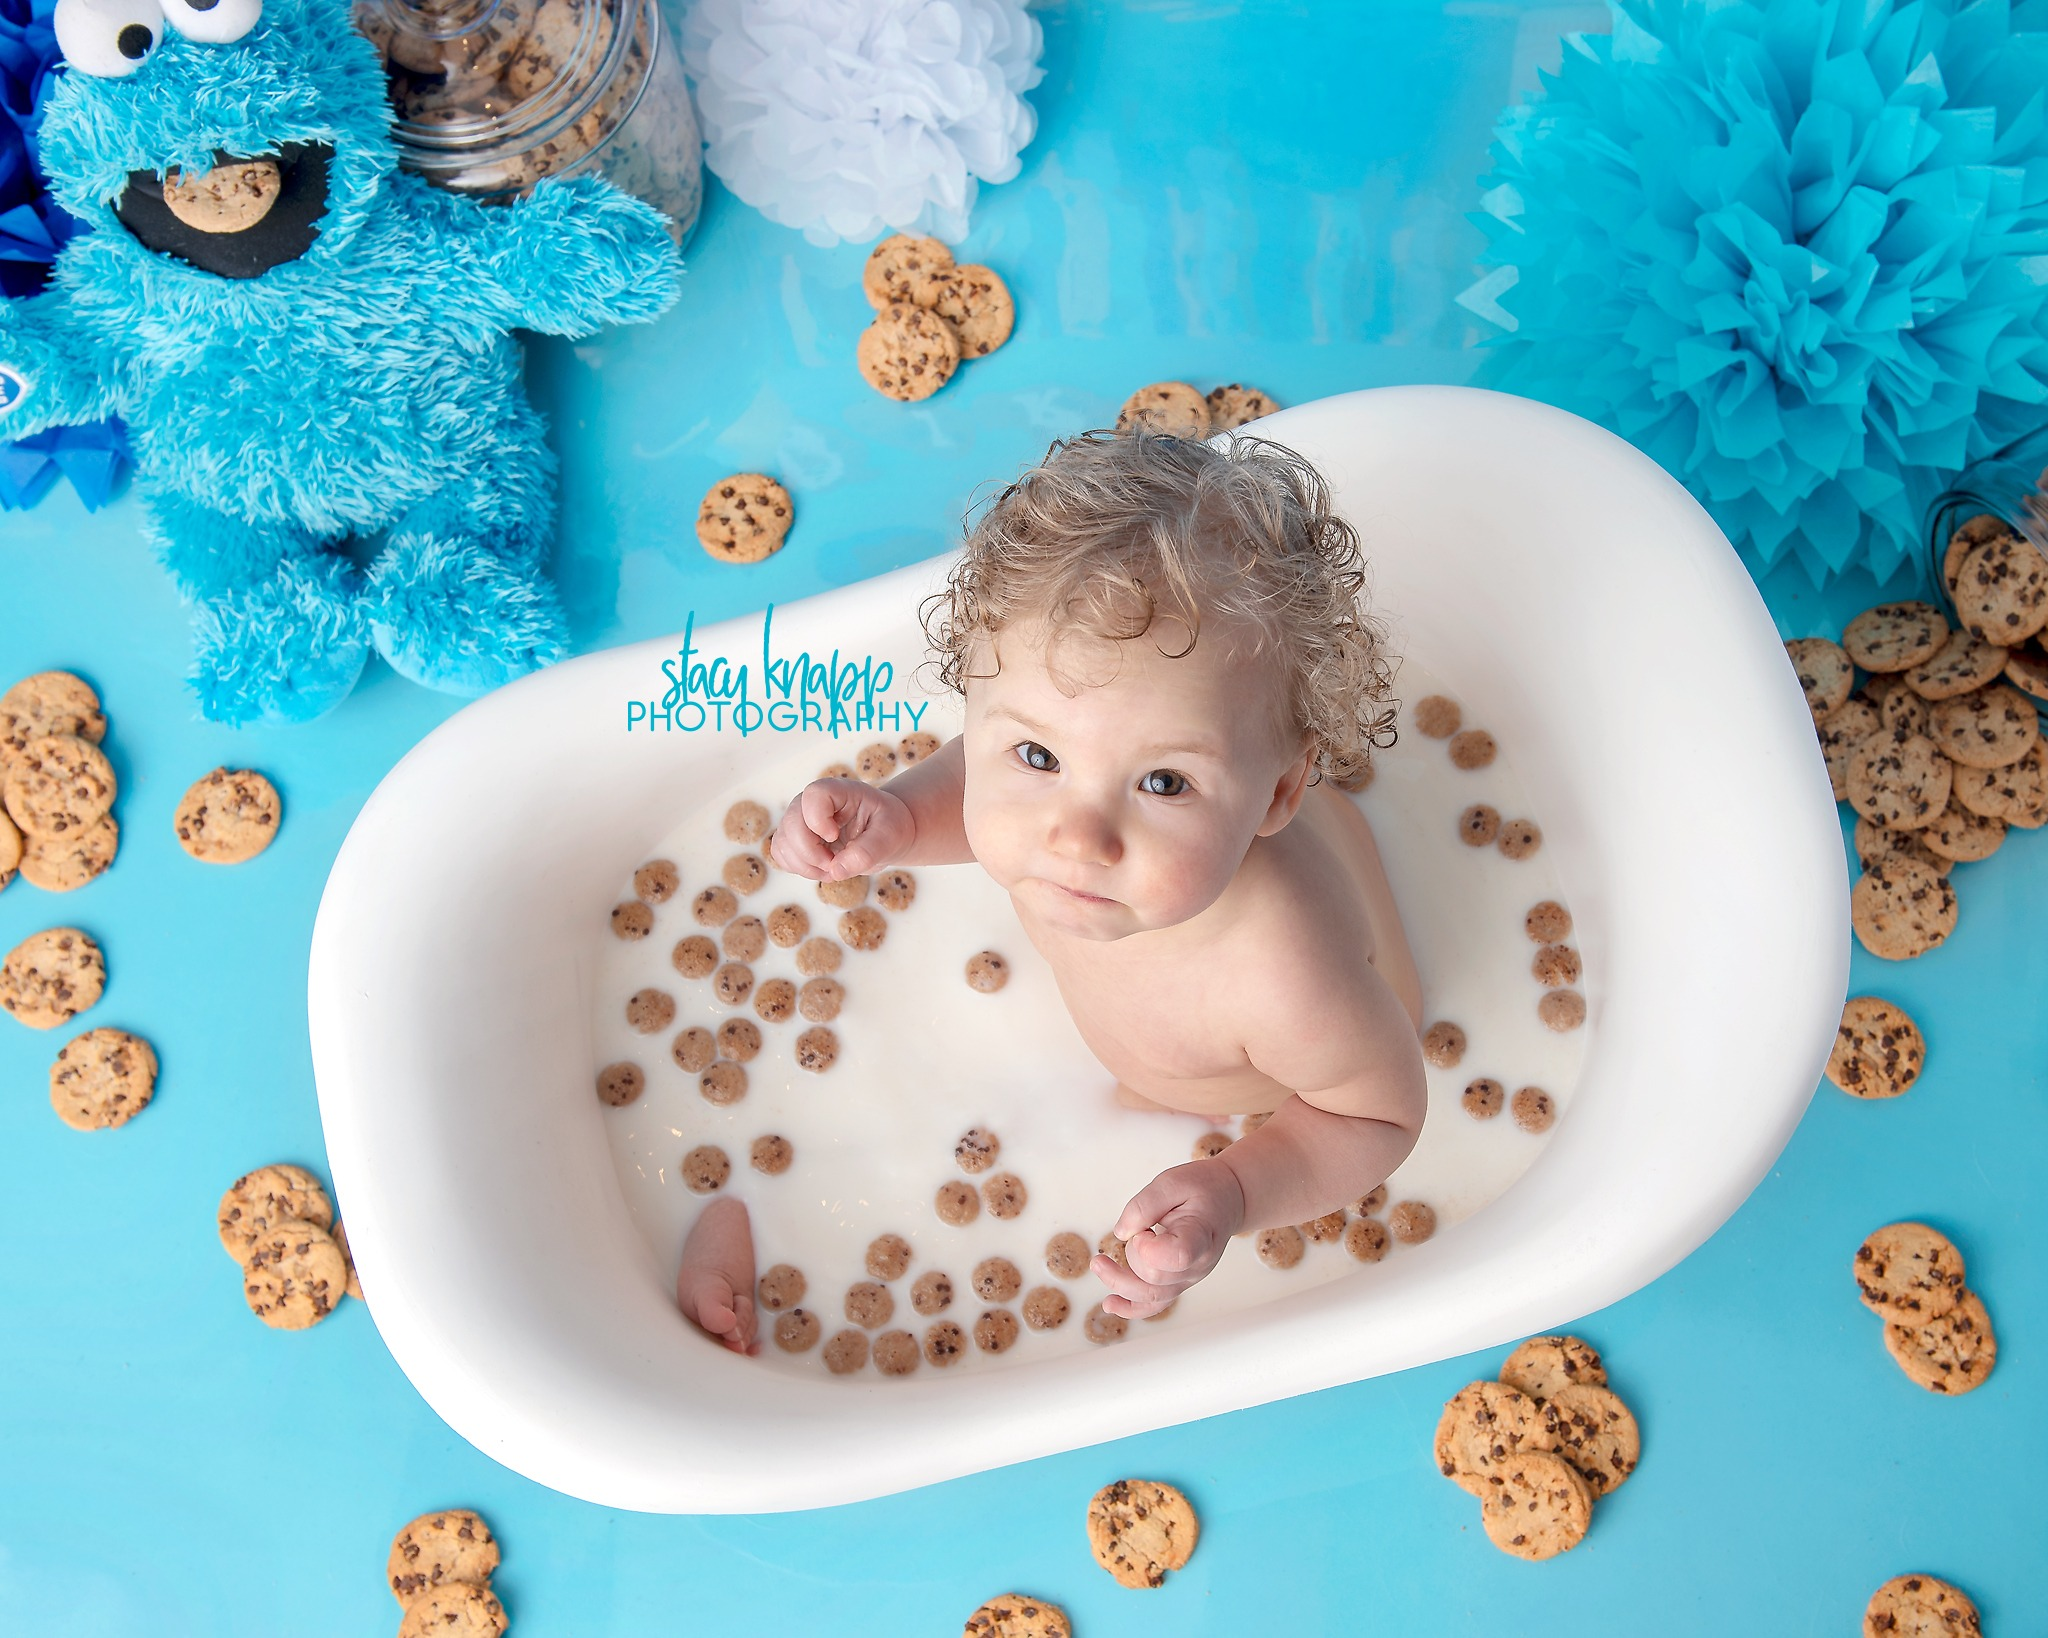 Baby girl in cookie monster bath during a splash session